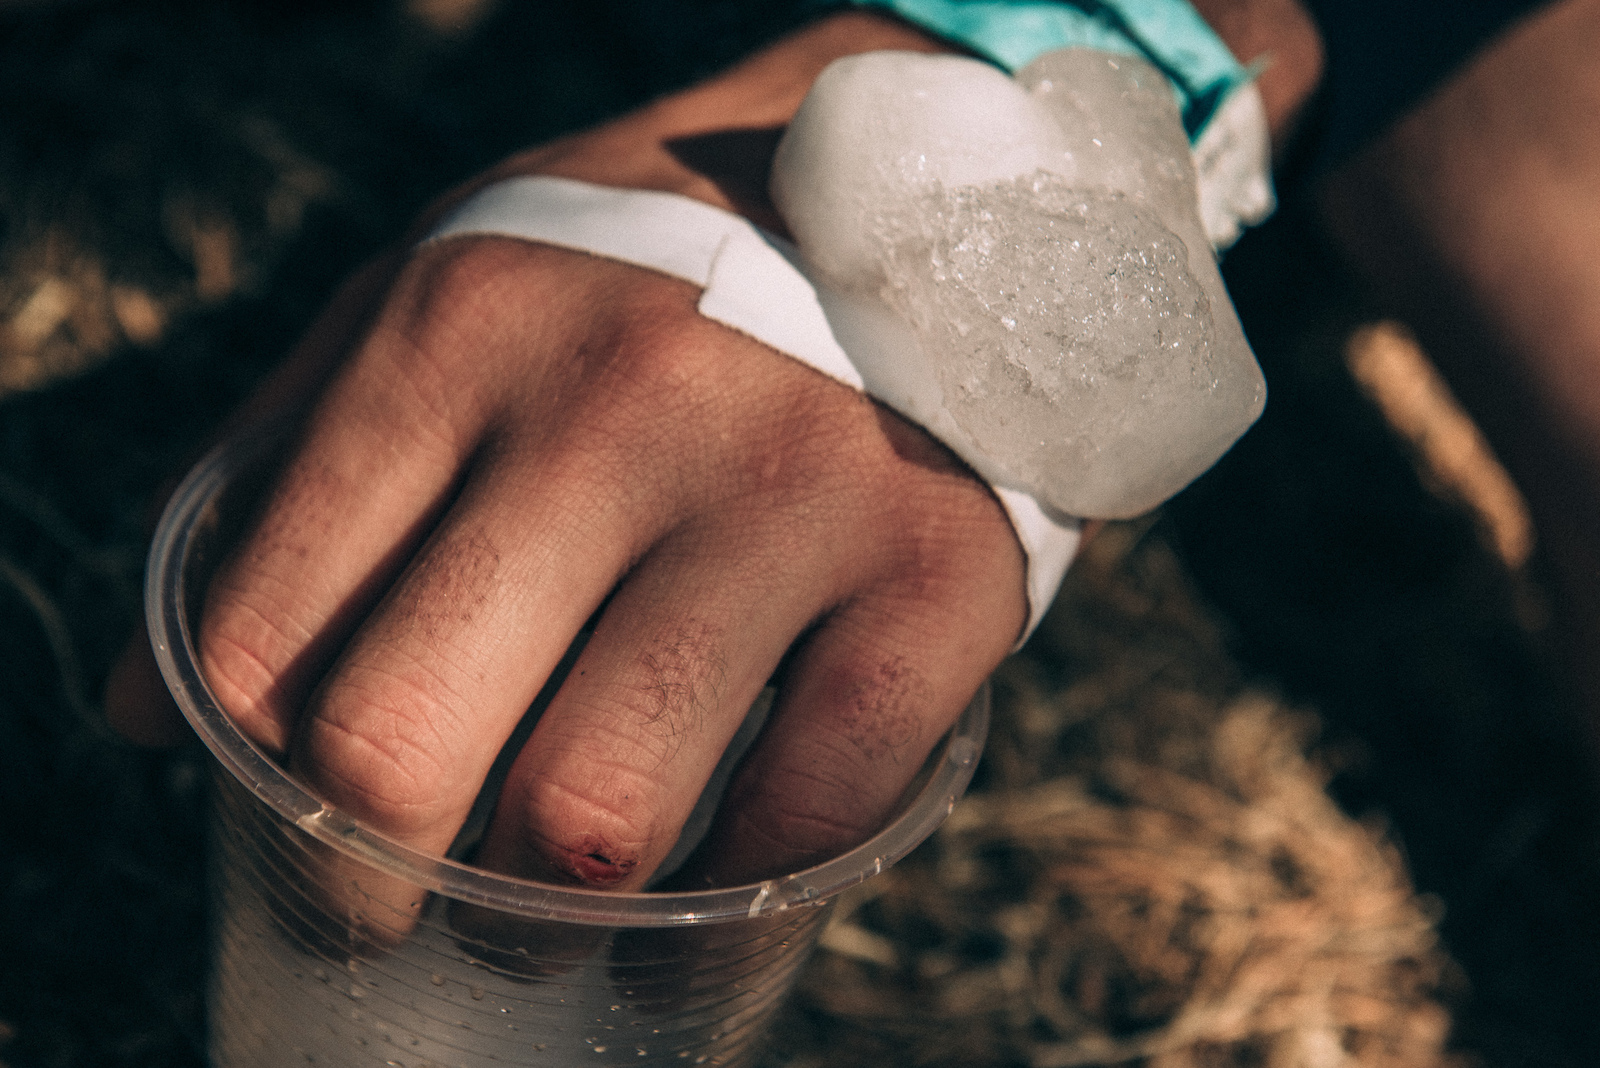 Thomas Lapeyrie smashed his hand in the first stage of the day and was seen icing it down whenever possible.